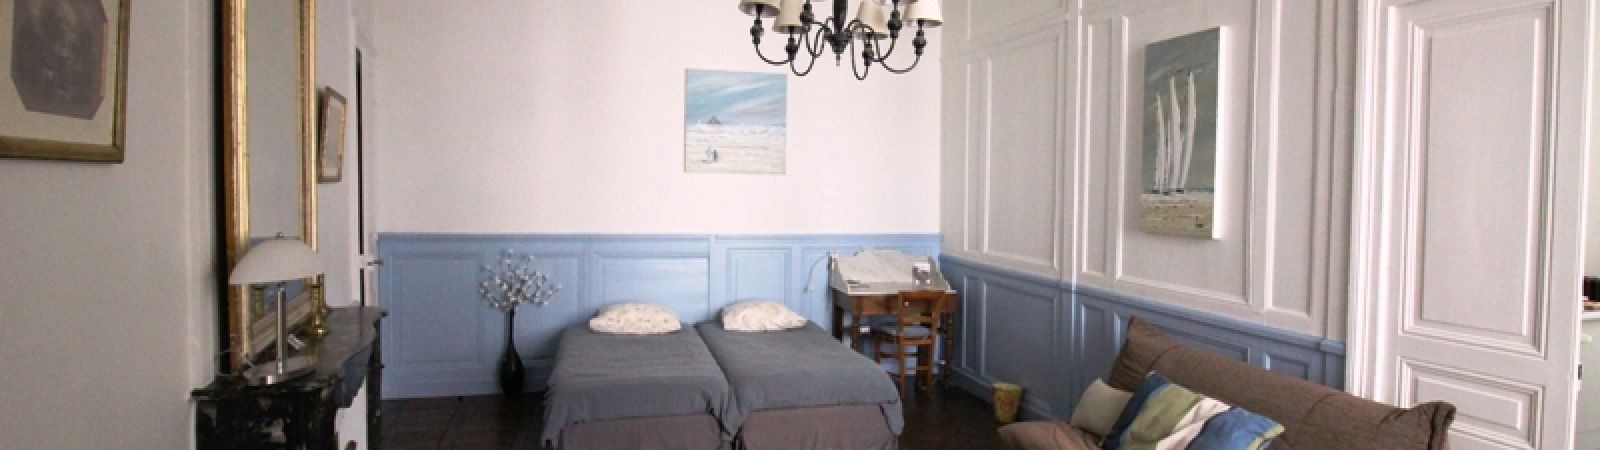 photo 8: Ensemble de 6 appartements